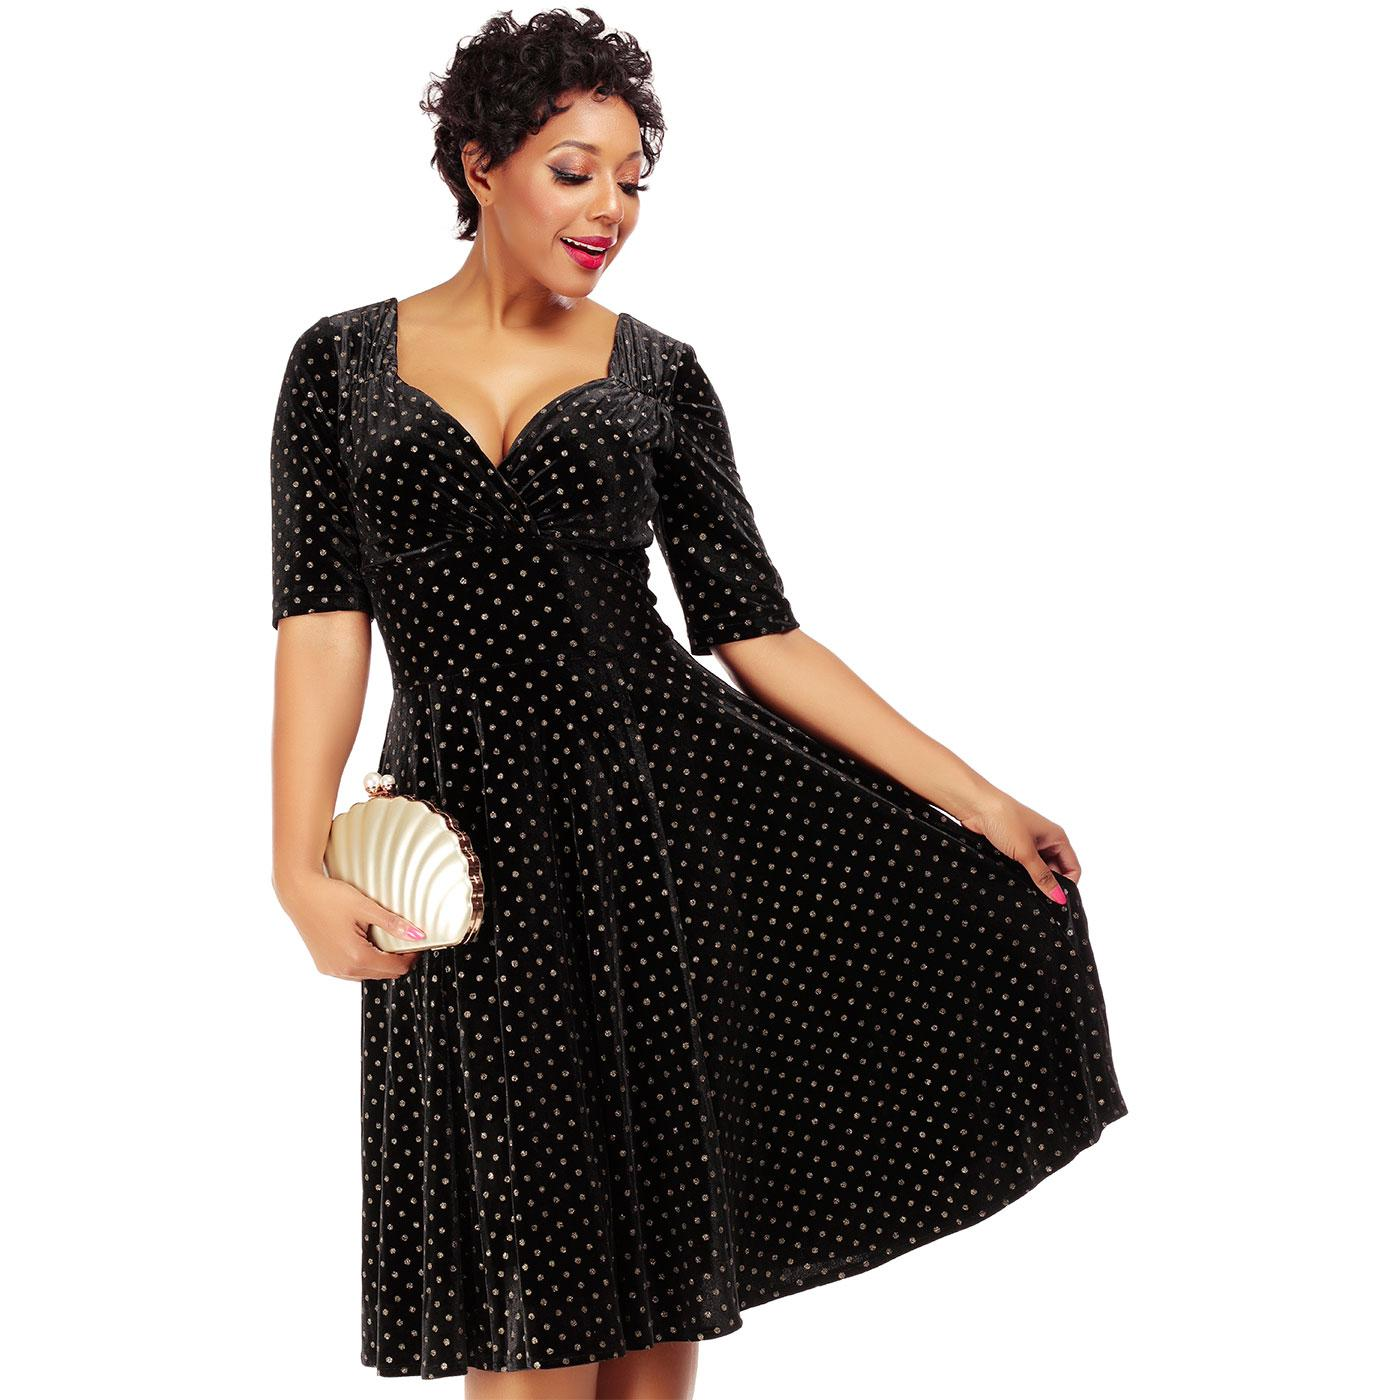 Trixie COLLECTIF 50s Golden Polka dot Swing Dress